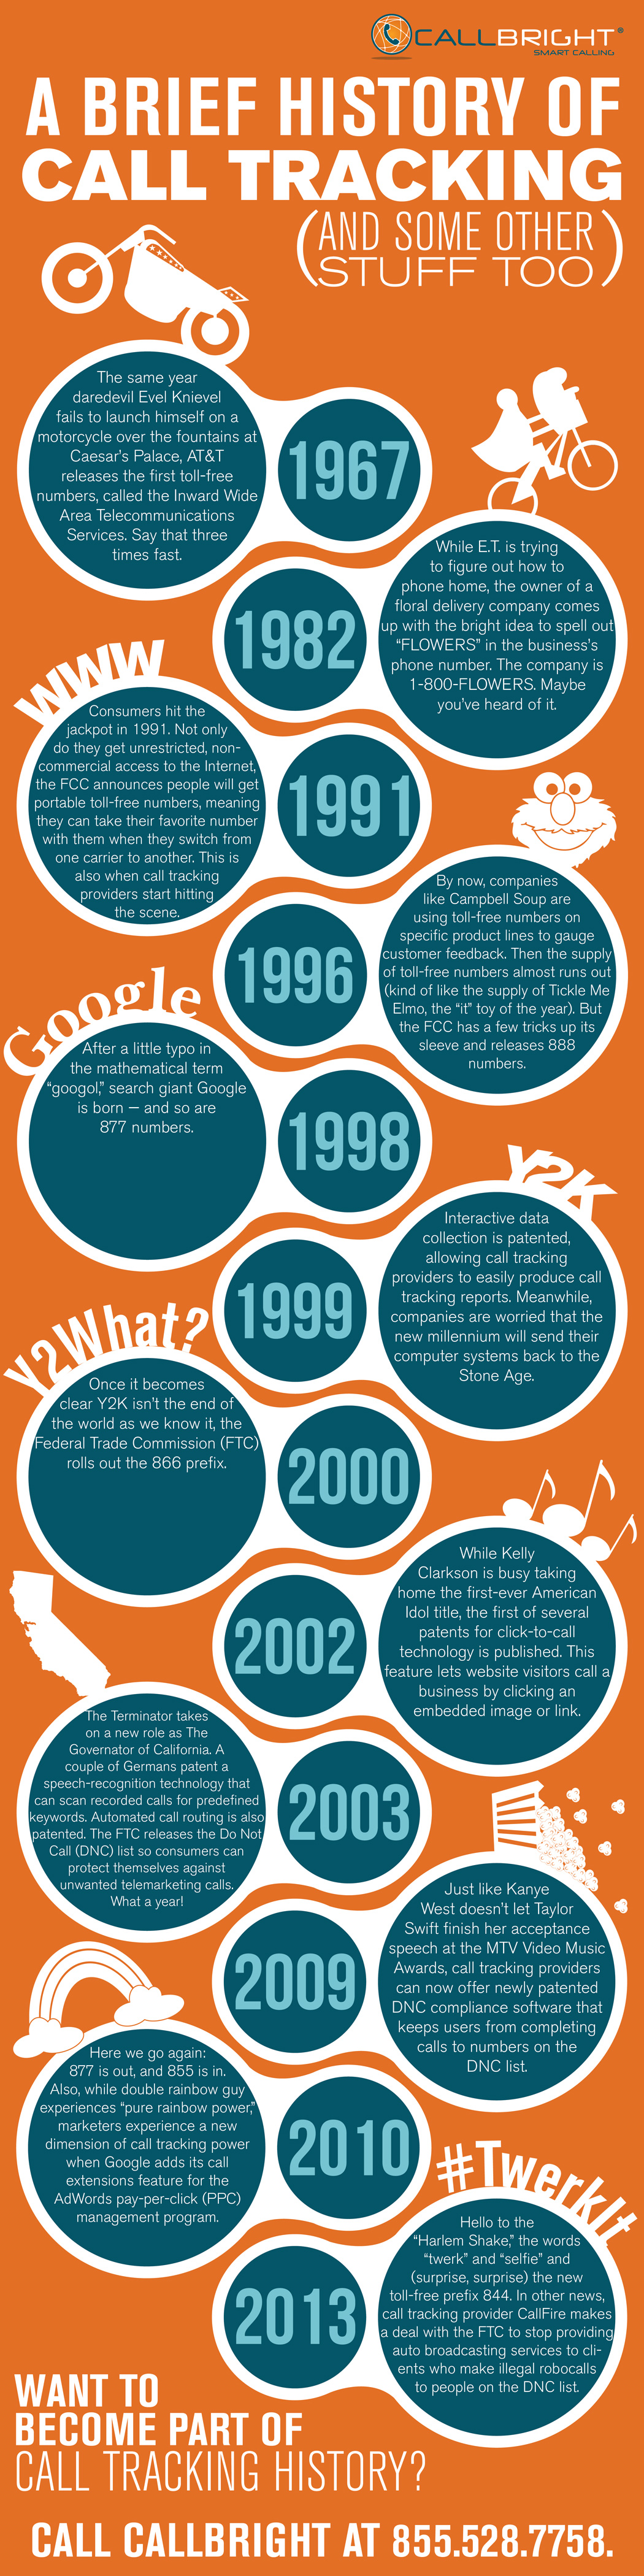 a history of call tracking